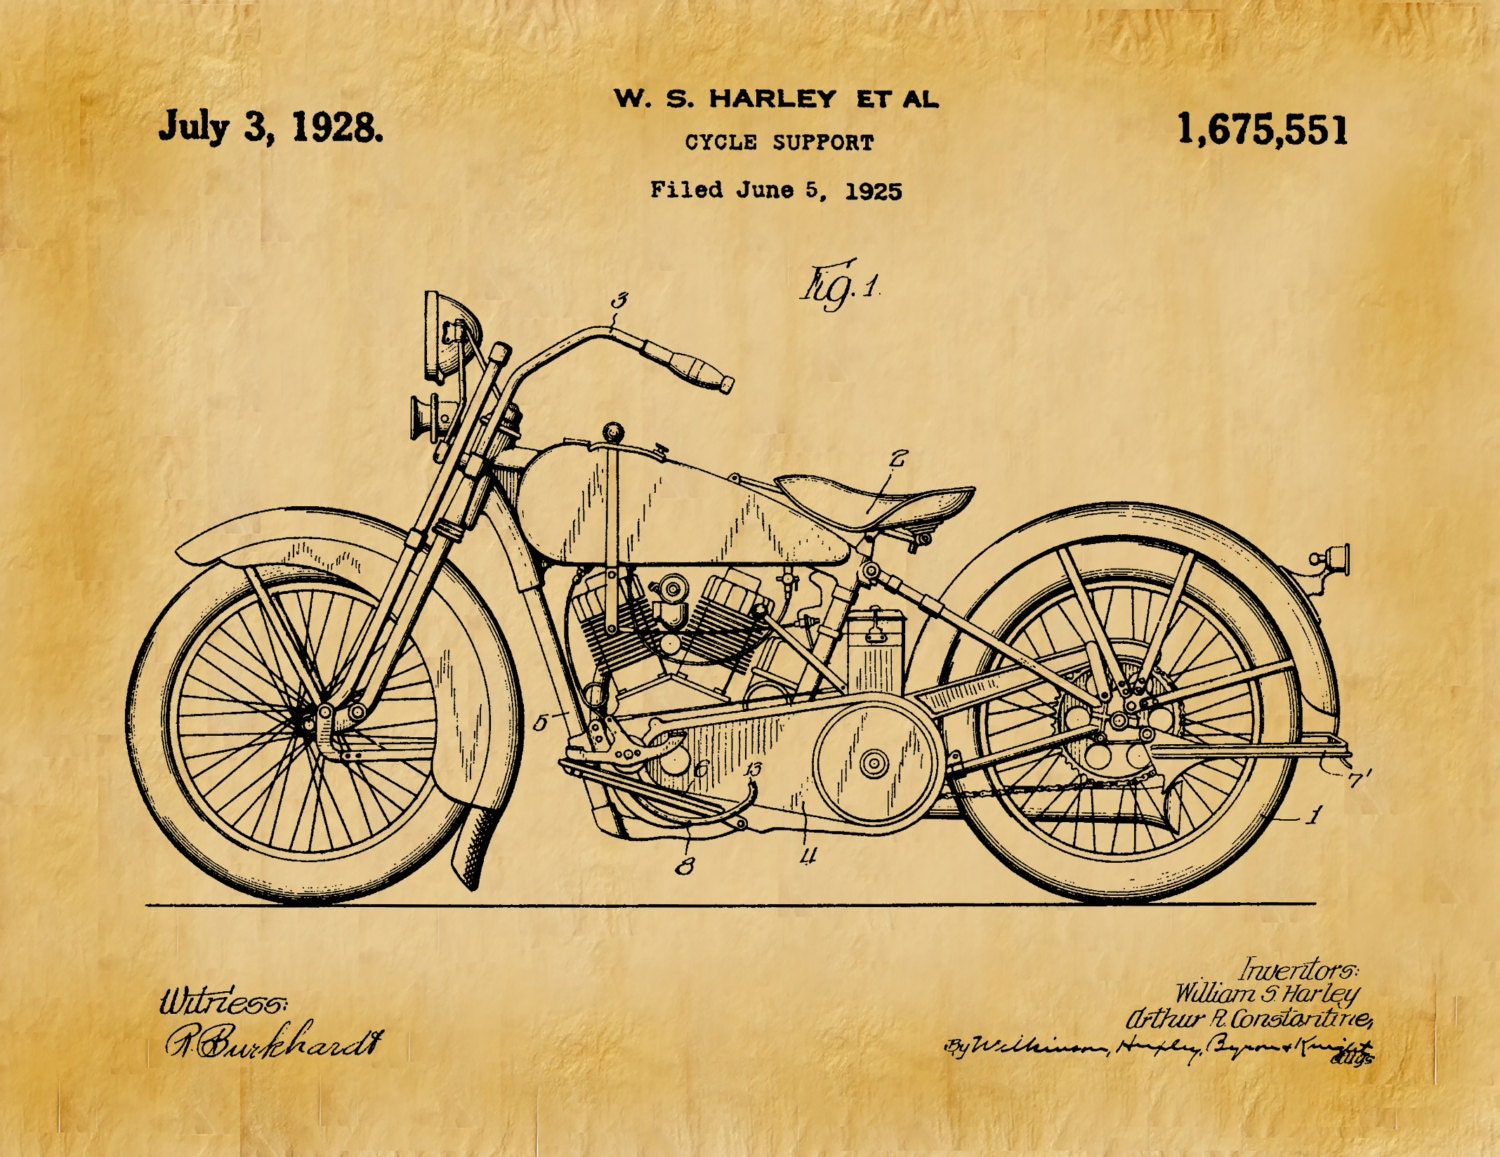 1928 Harley Motorcycle Patent Print - Vintage Harley Davidson Motorcycle  Poster - Harley Davidson Decor - Harley Collector Gift Idea